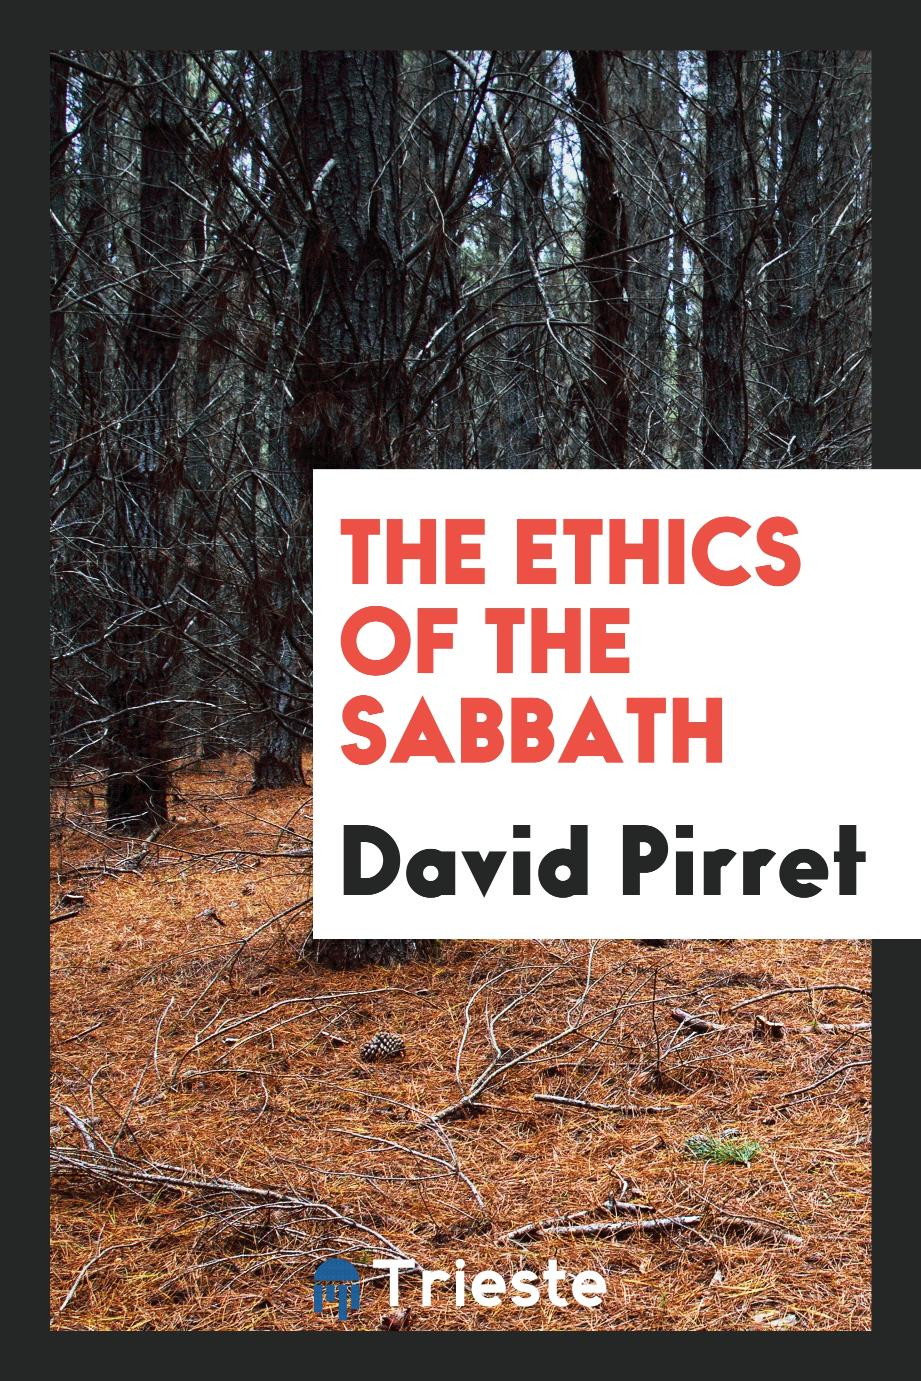 The ethics of the sabbath